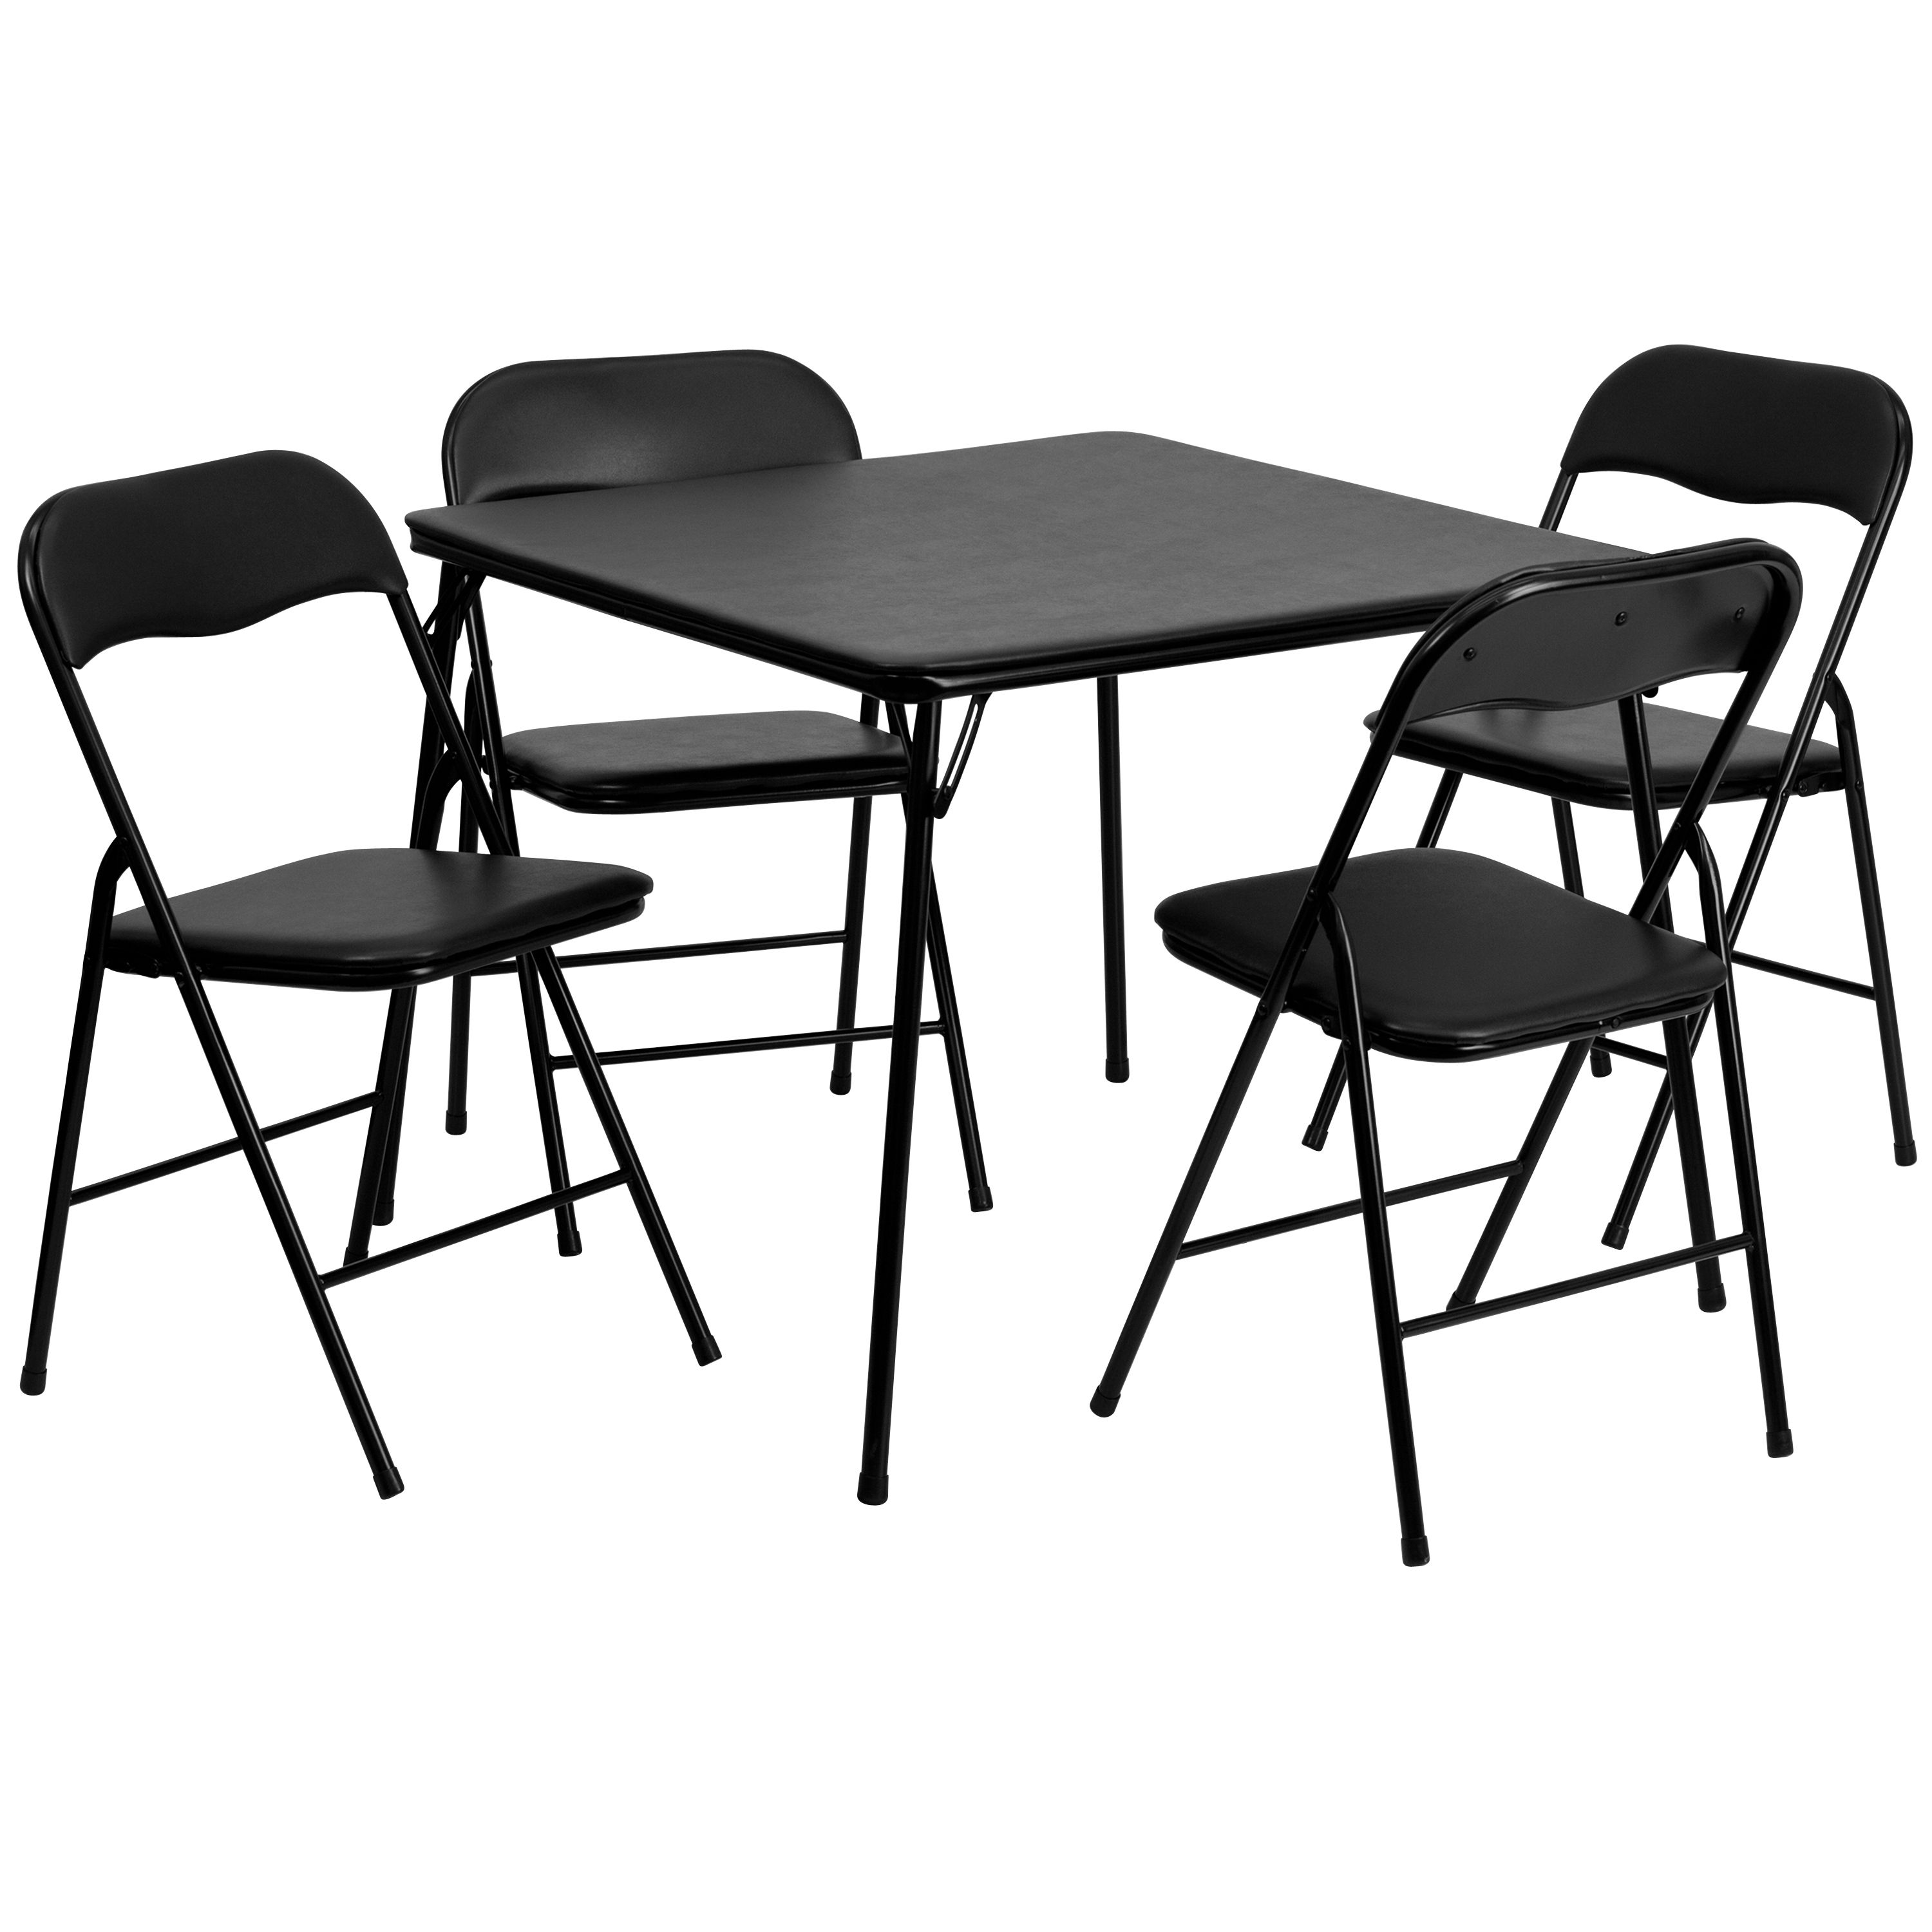 Flash Furniture 5 Piece Black Folding Card Table And Chair Set Walmart Com In 2020 Card Table And Chairs Table And Chair Sets Metal Folding Chairs